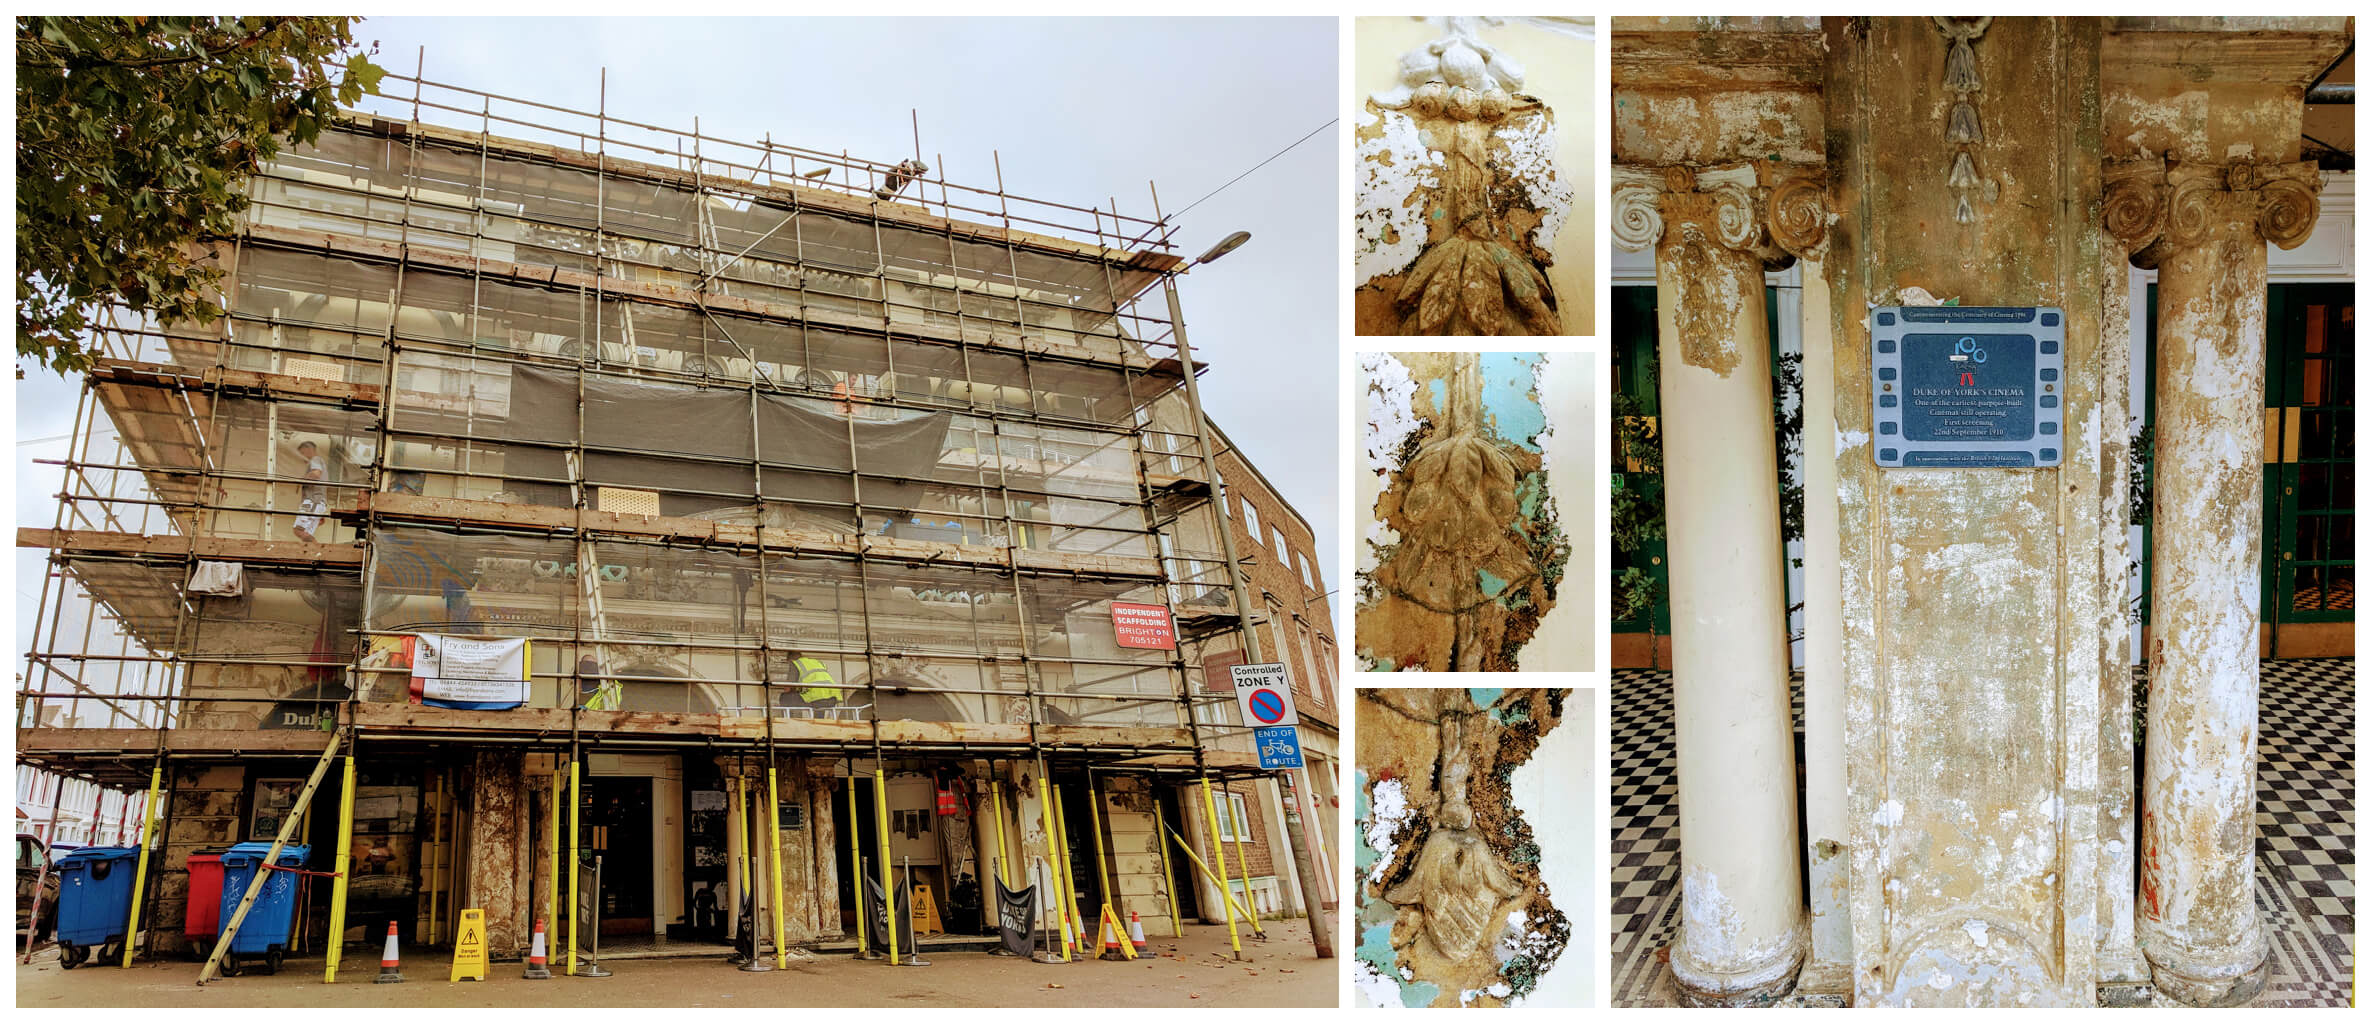 Duke of Yorks restoration process